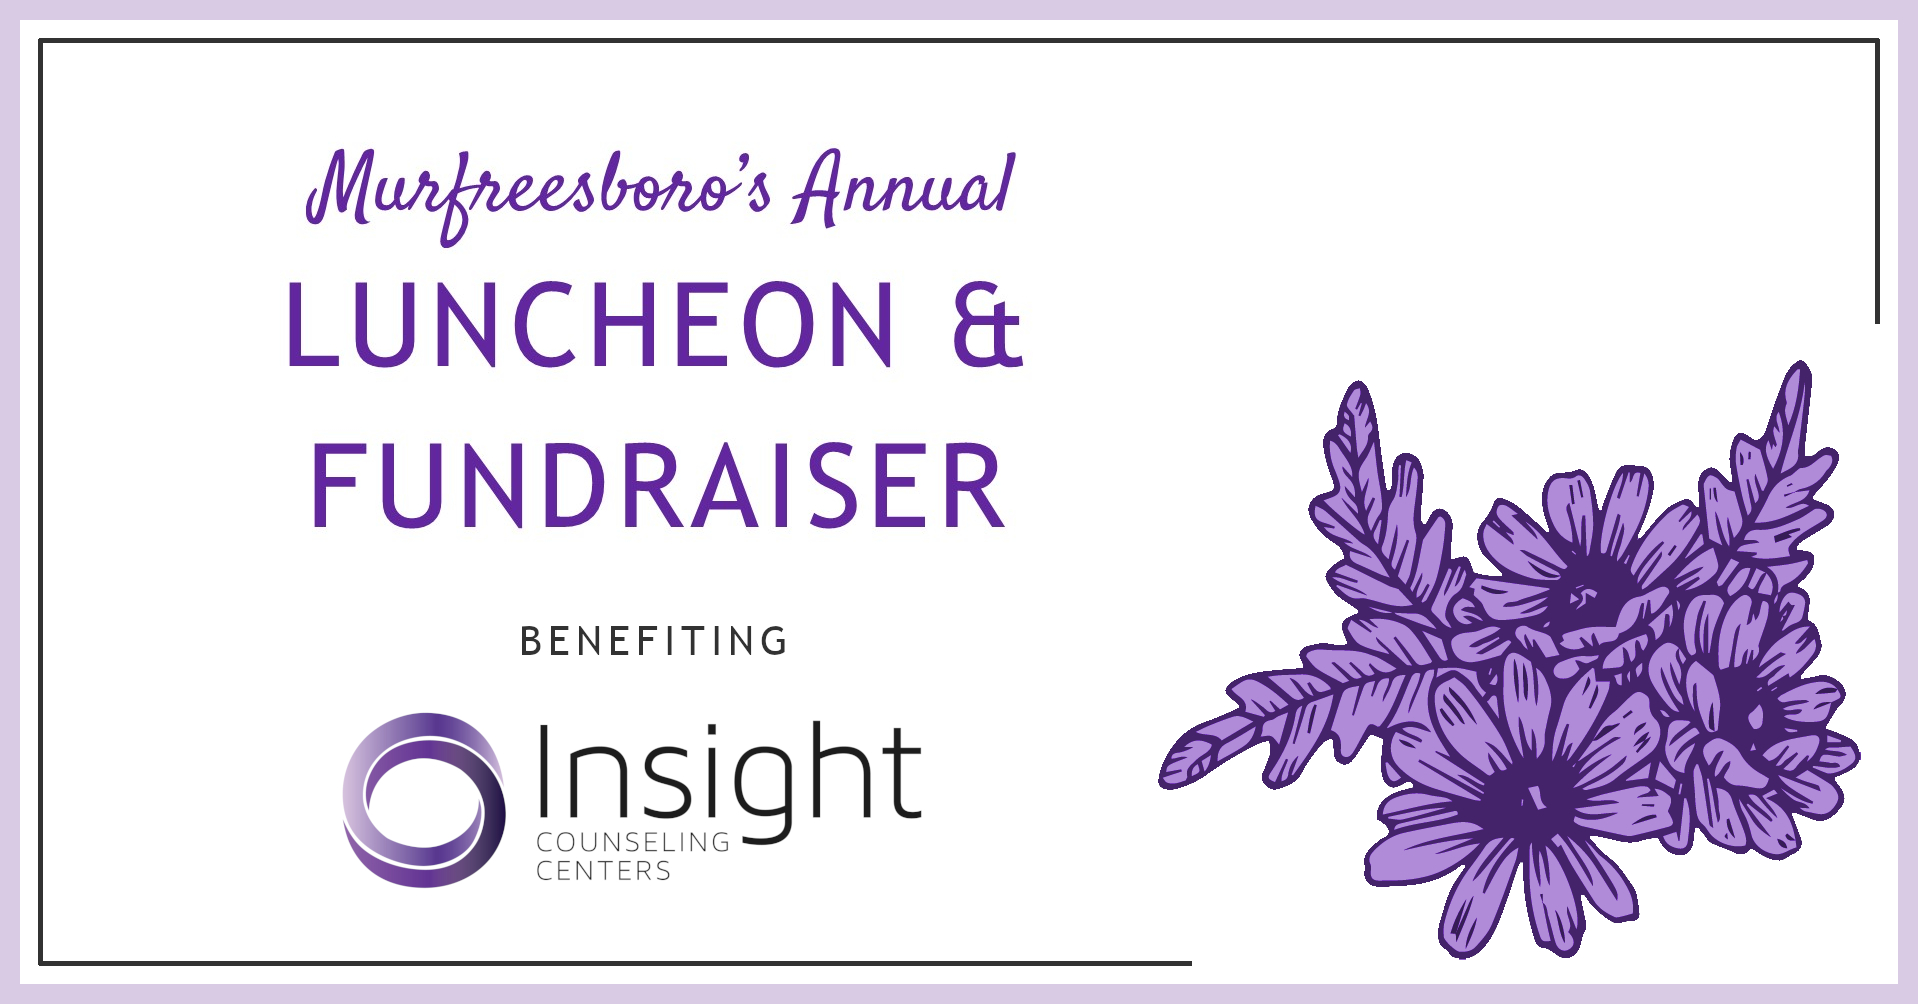 Murfreesboro's Annual Luncheon & Fundraiser On August 15, 2019